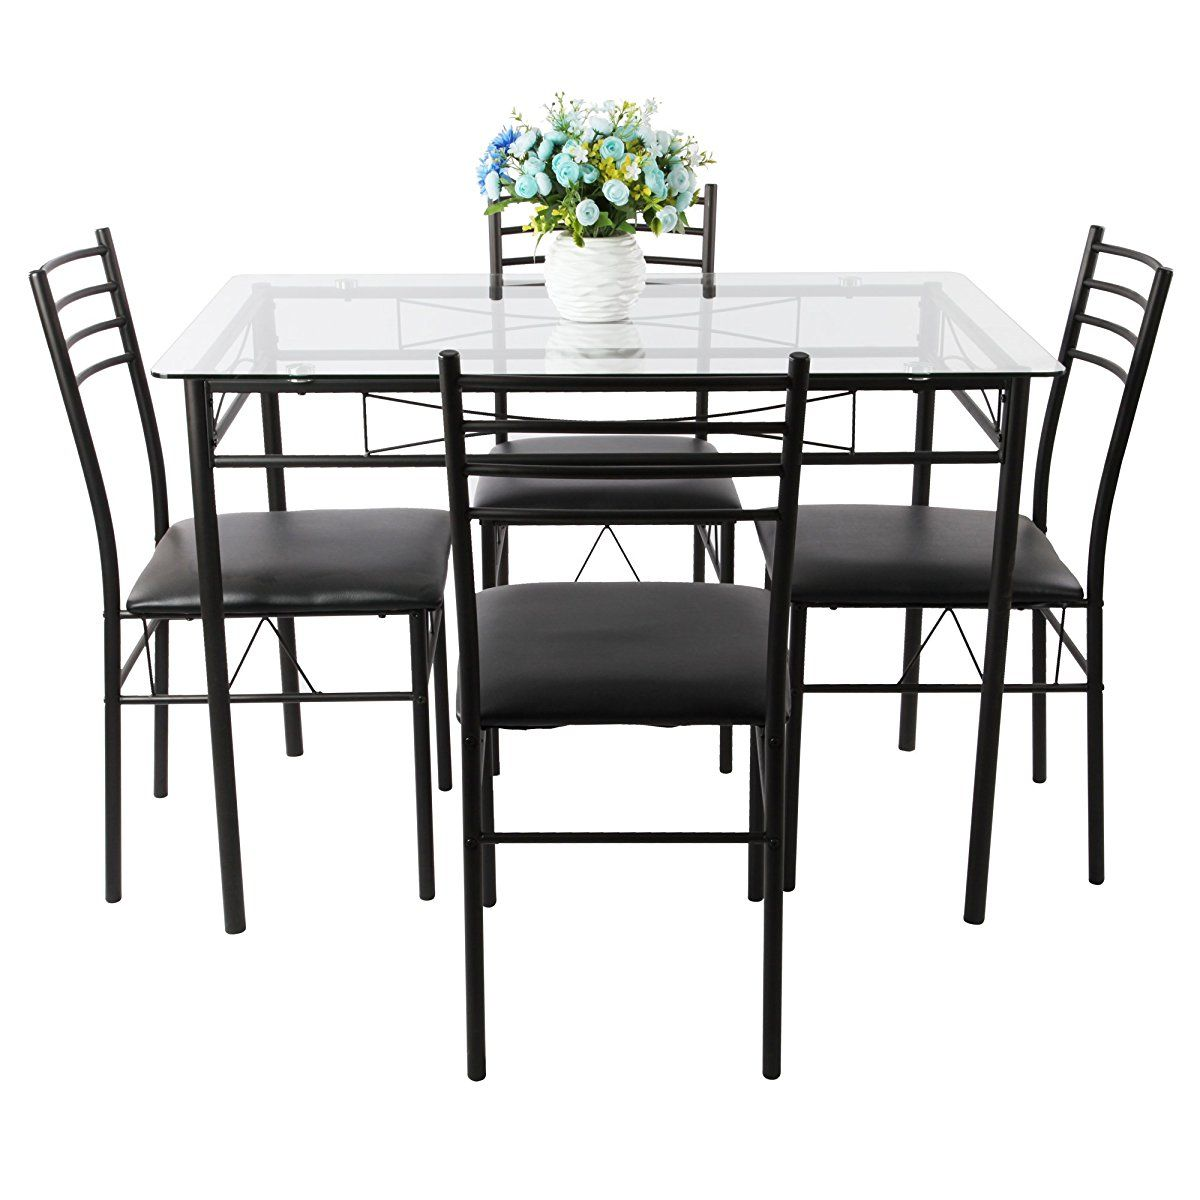 Vecelo Dining Table With 4 Chairs Black Dining Table Dining Table Black Dining Table Setting